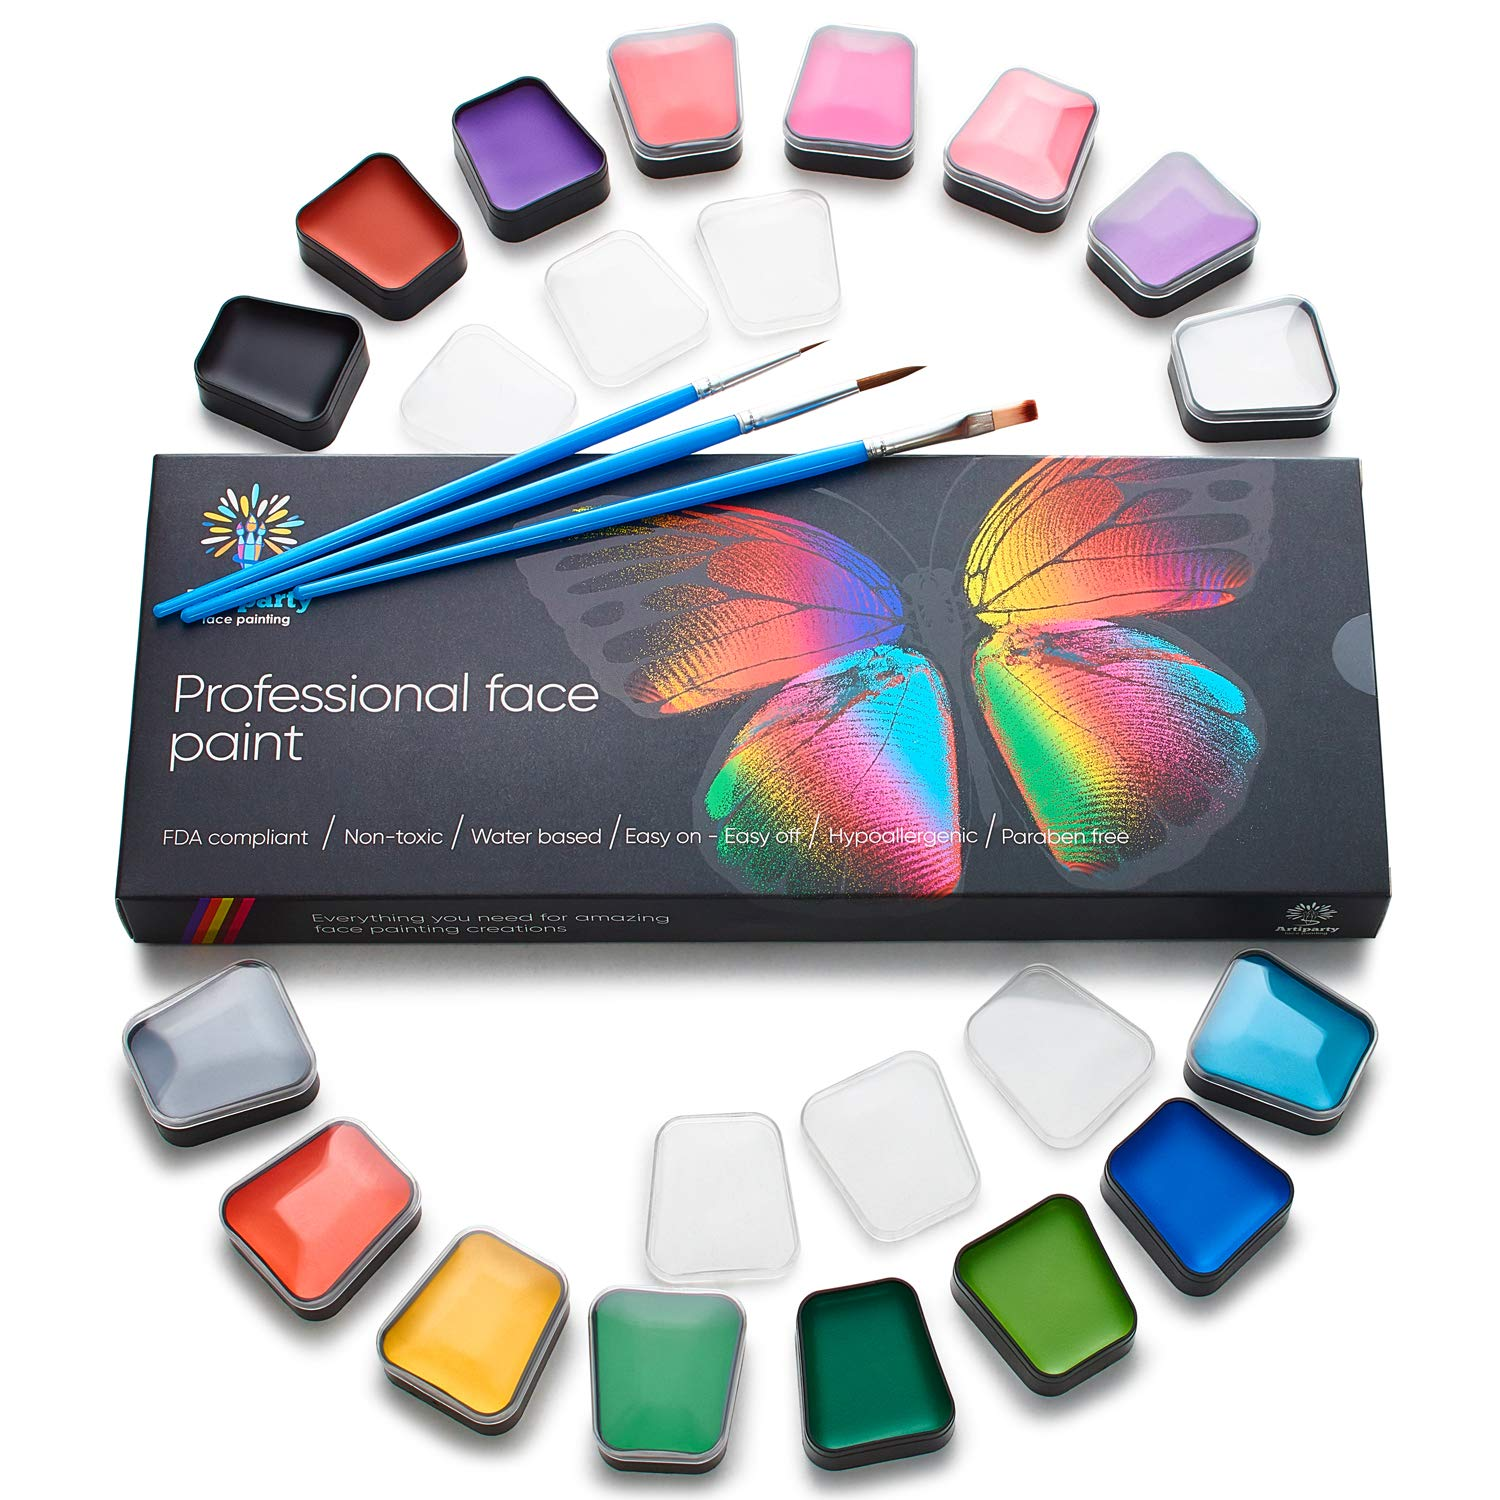 Professional Face Paint Kit for Kids